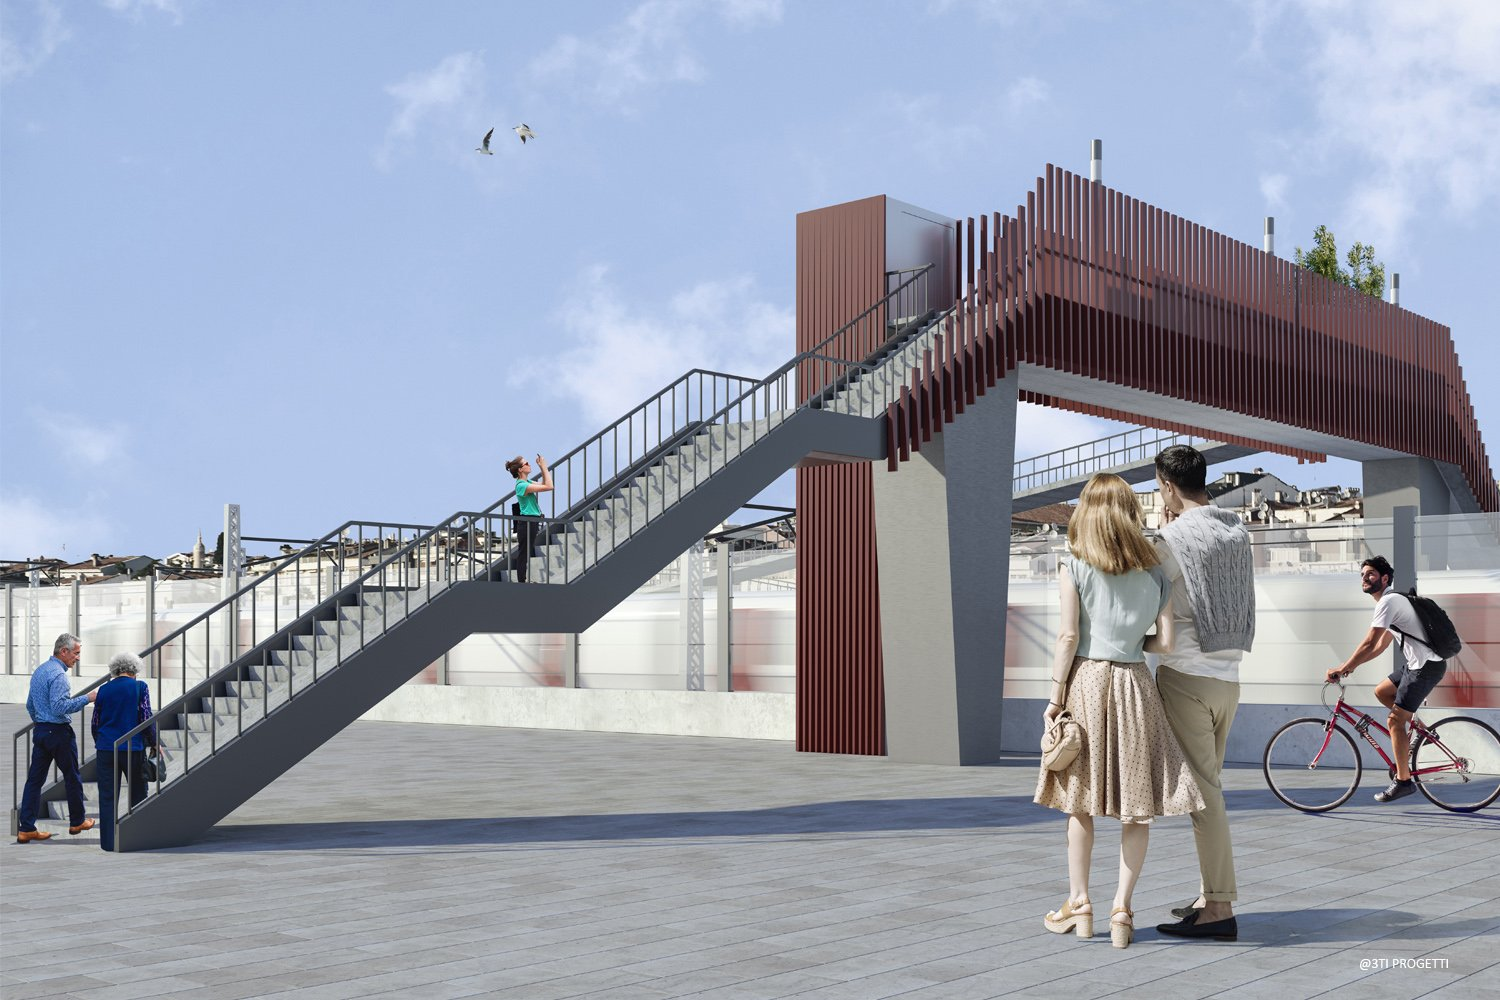 OVERPASS WITH STAIRS AND ELEVATOR 3TI PROGETTI